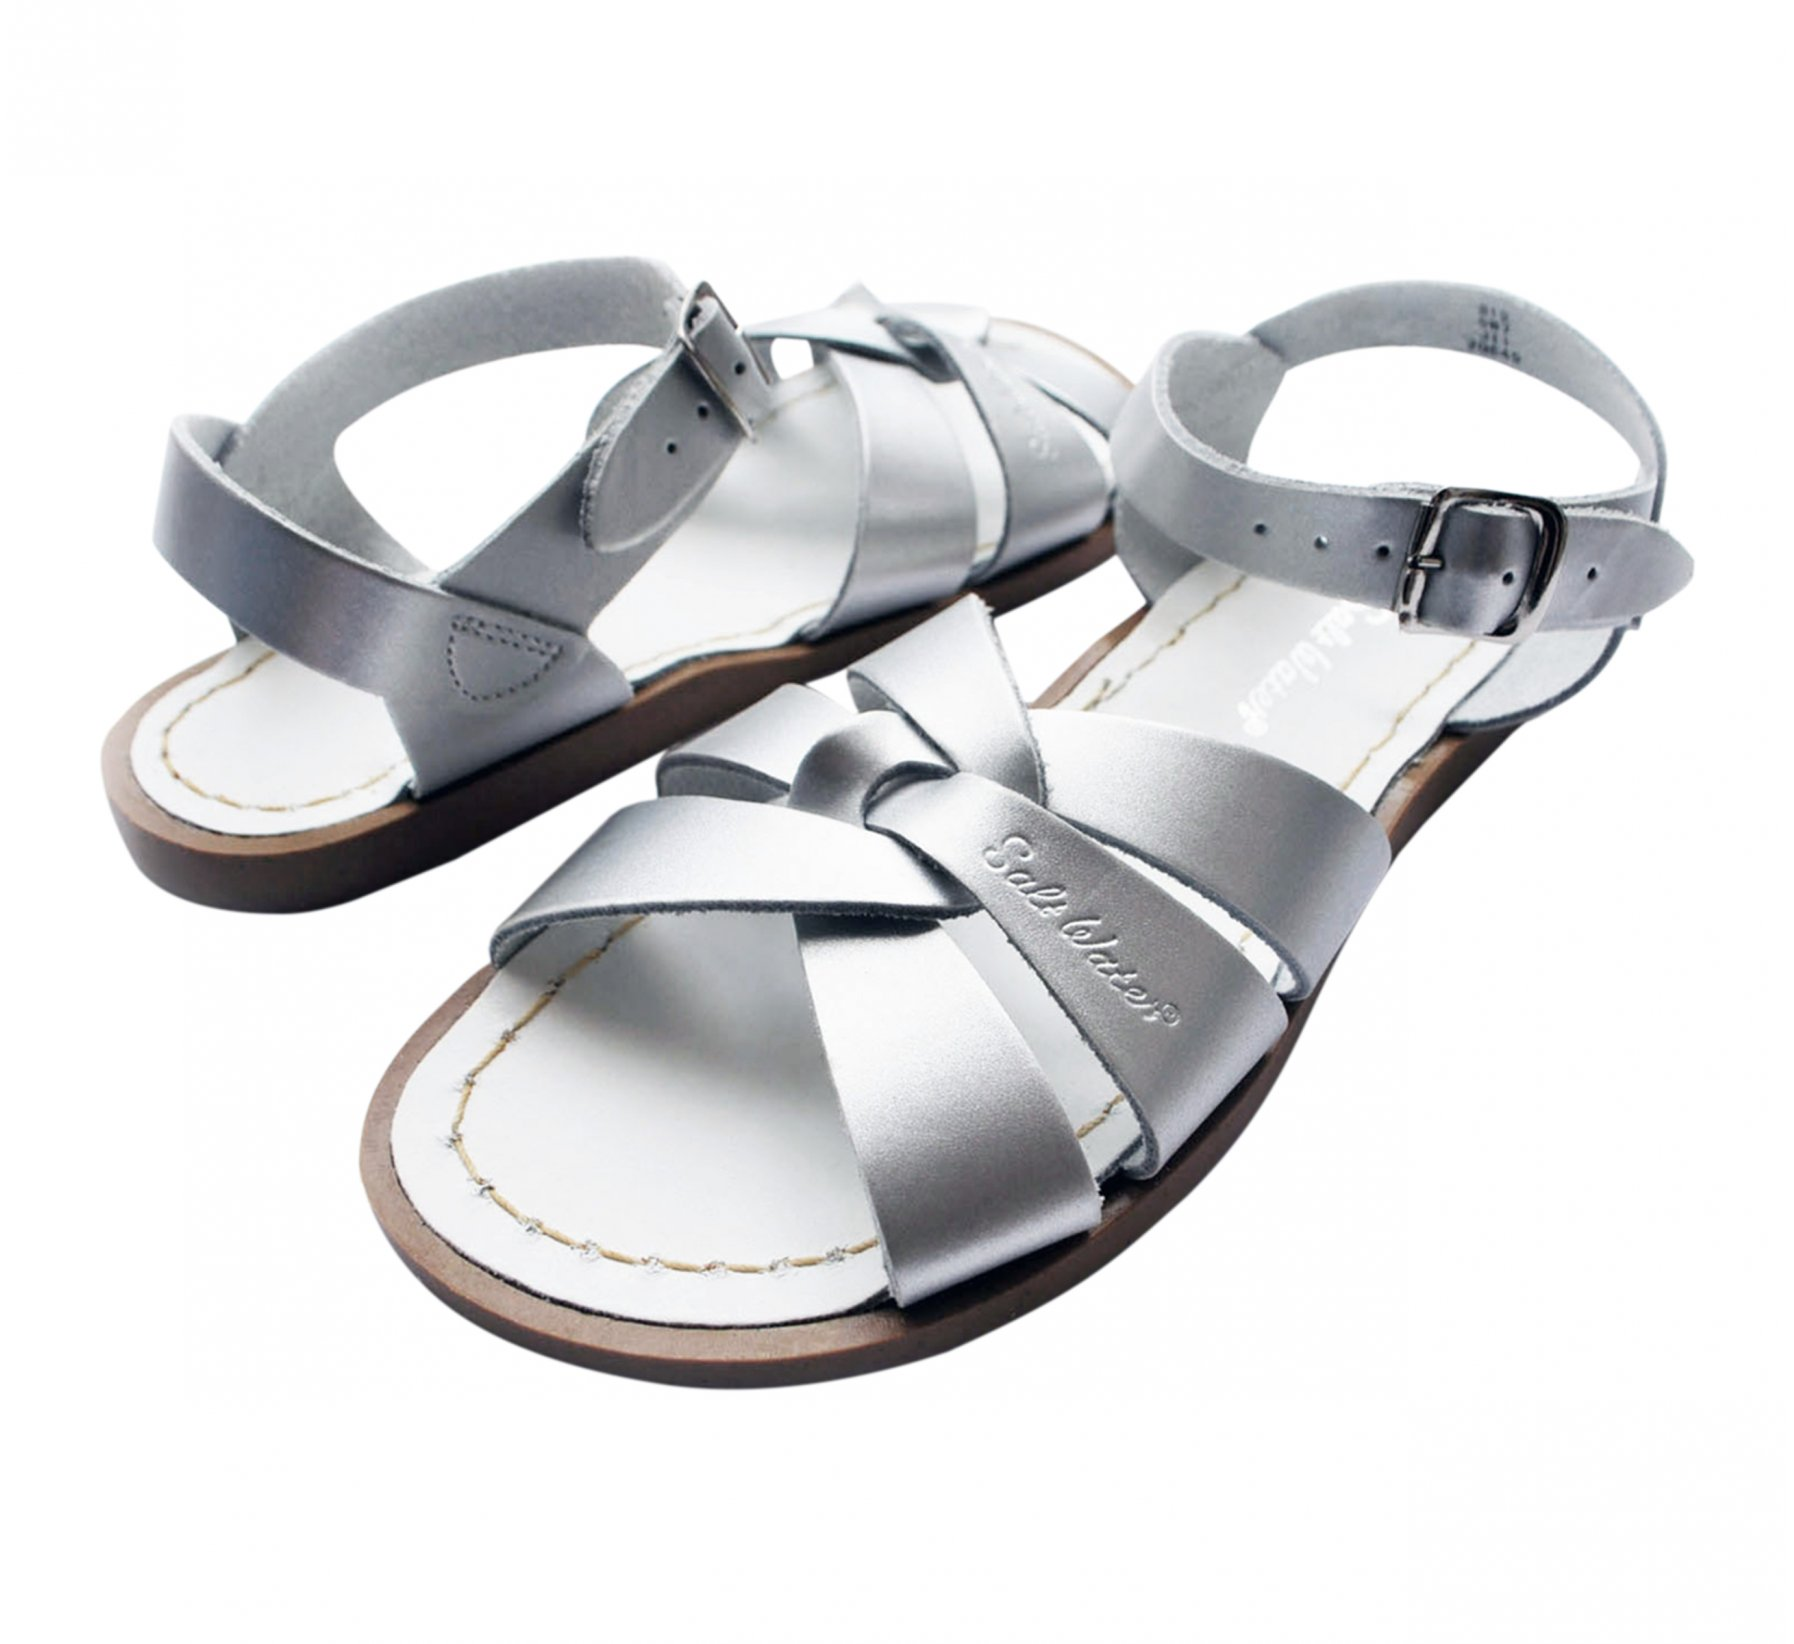 Original Perak - Salt Water Sandals